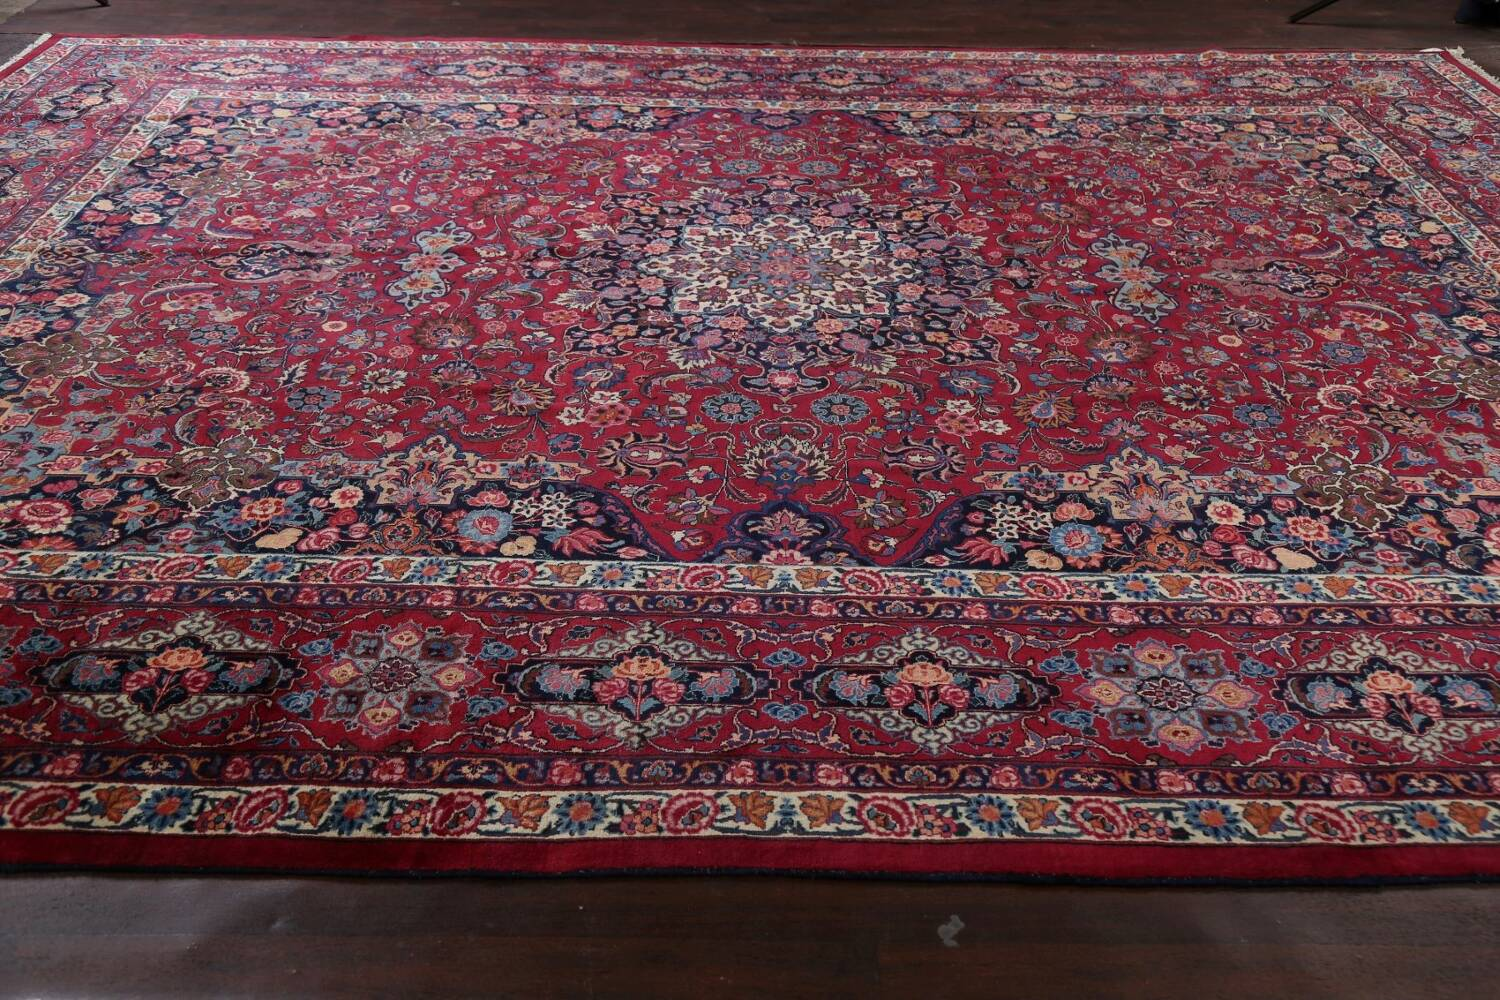 Antique Vegetable Dye Mood Persian Red Rug 11x15 image 15